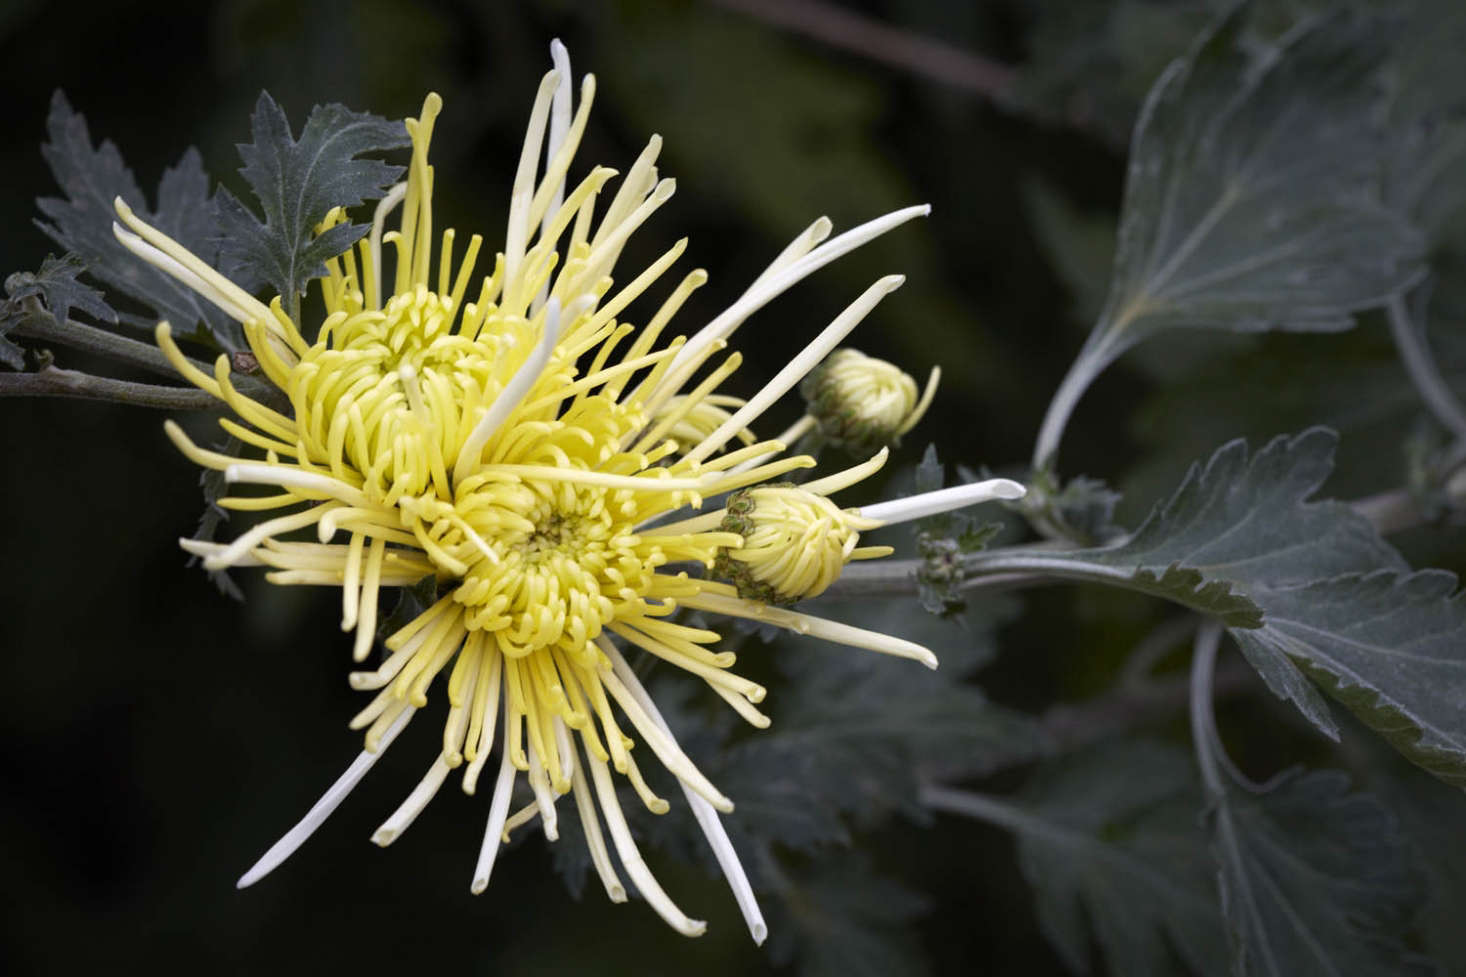 Spider mums earned their nickname from the long, slender shape of their petals, which resemble spiders&#8